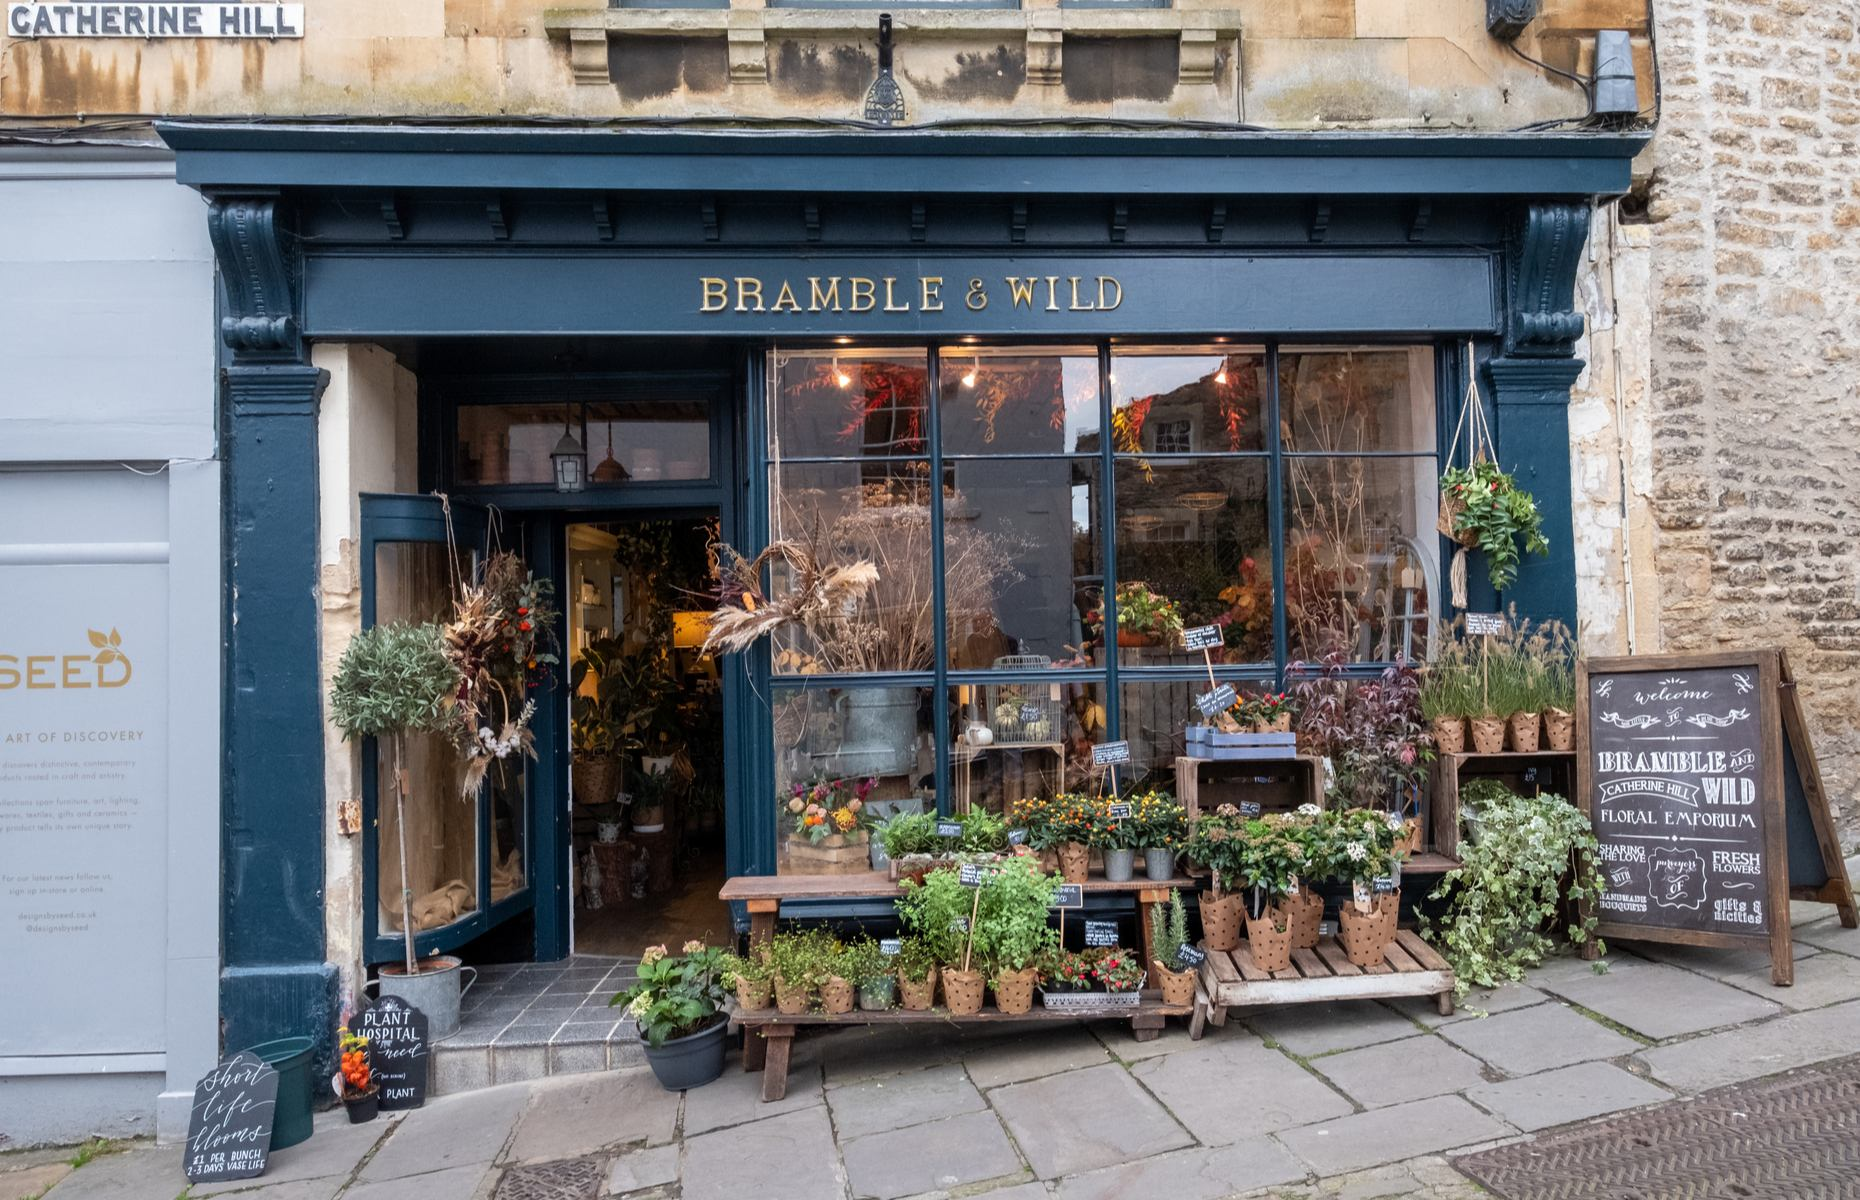 Shop in Frome (Image: Lois GoBe/Shutterstock)